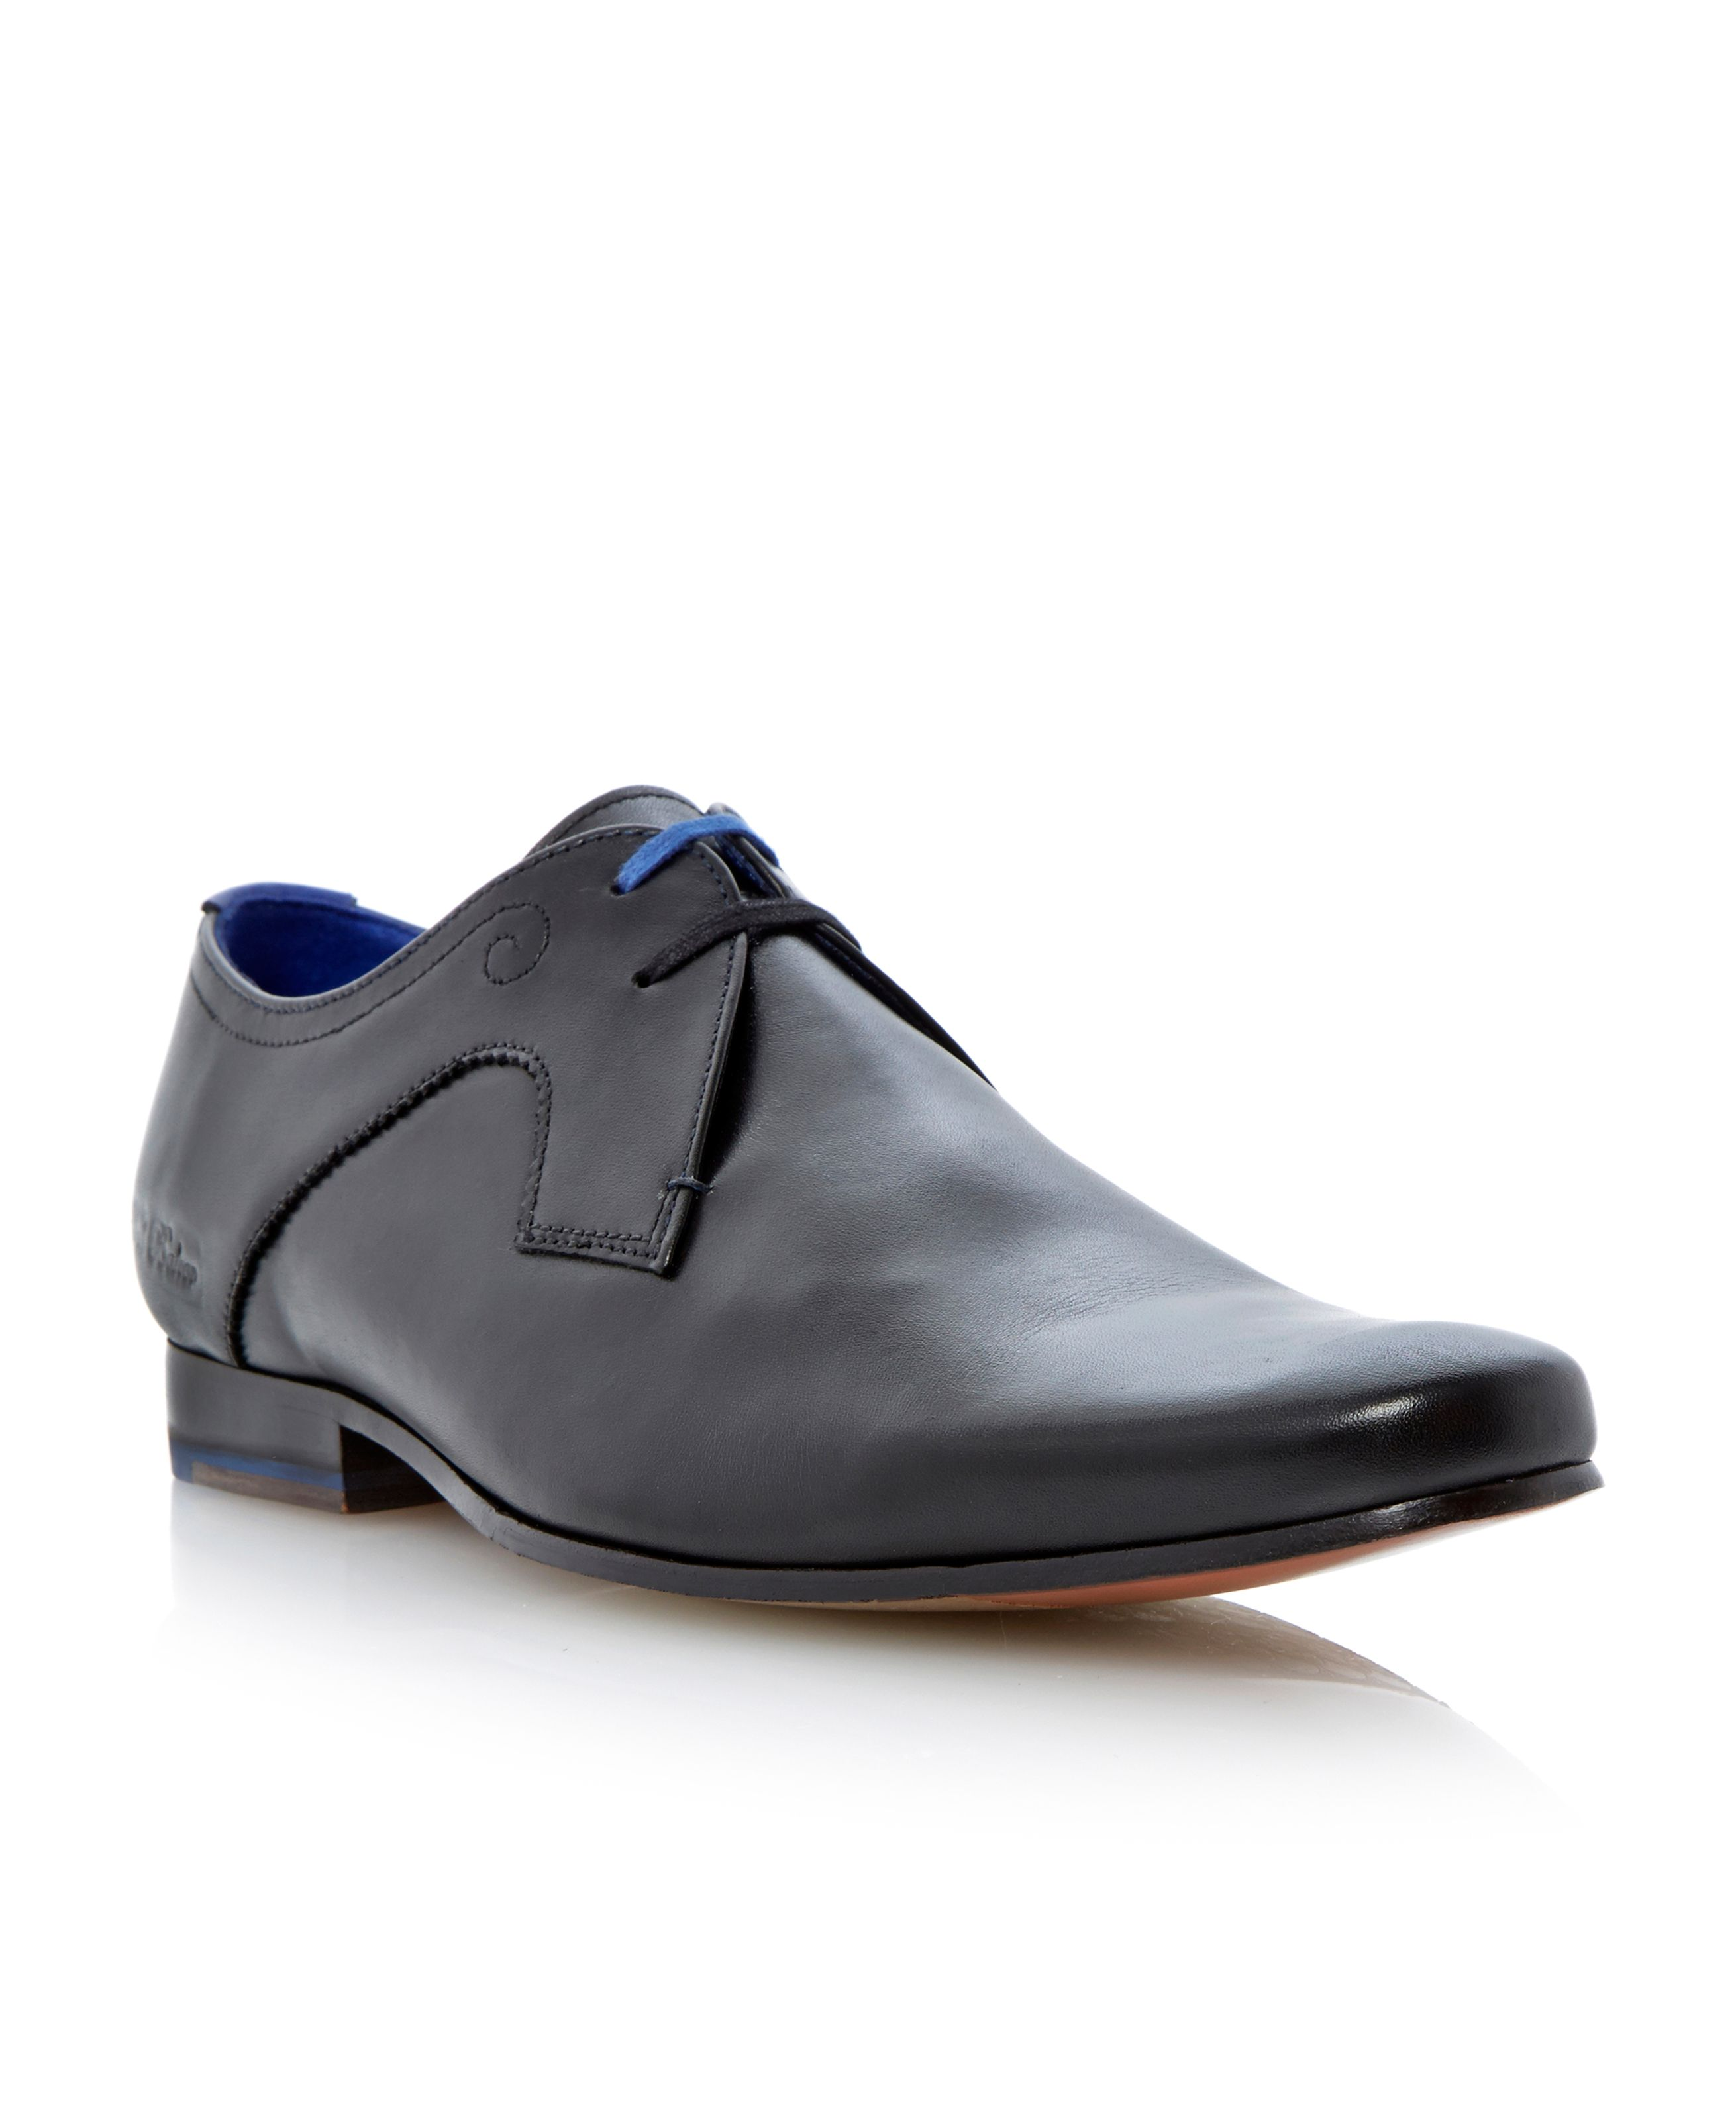 Martt lace up soft point derby shoes